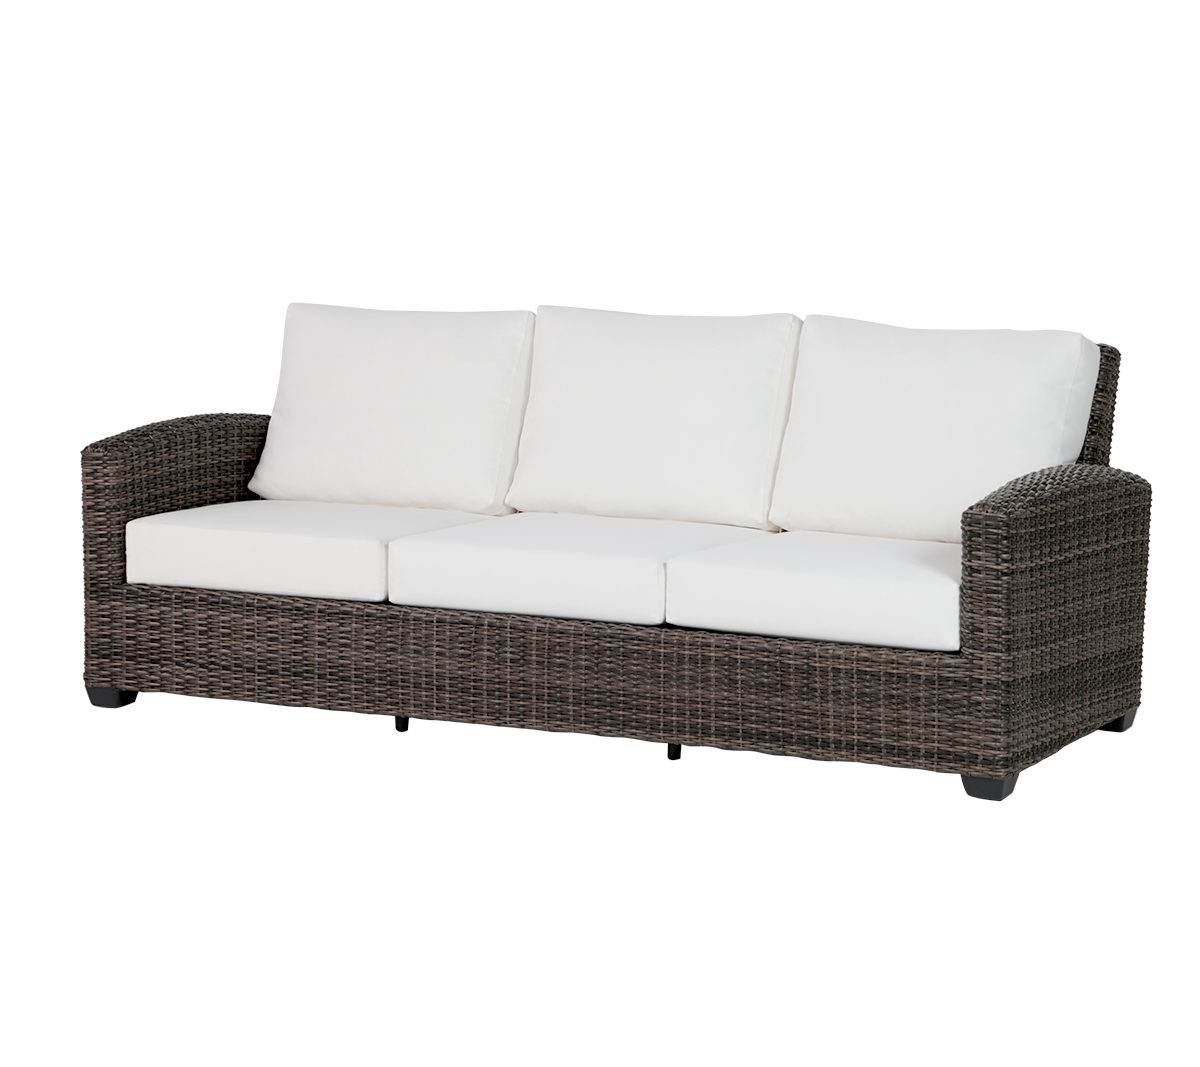 The Coral Gables sofa in brown wicker with cream colored cushions.